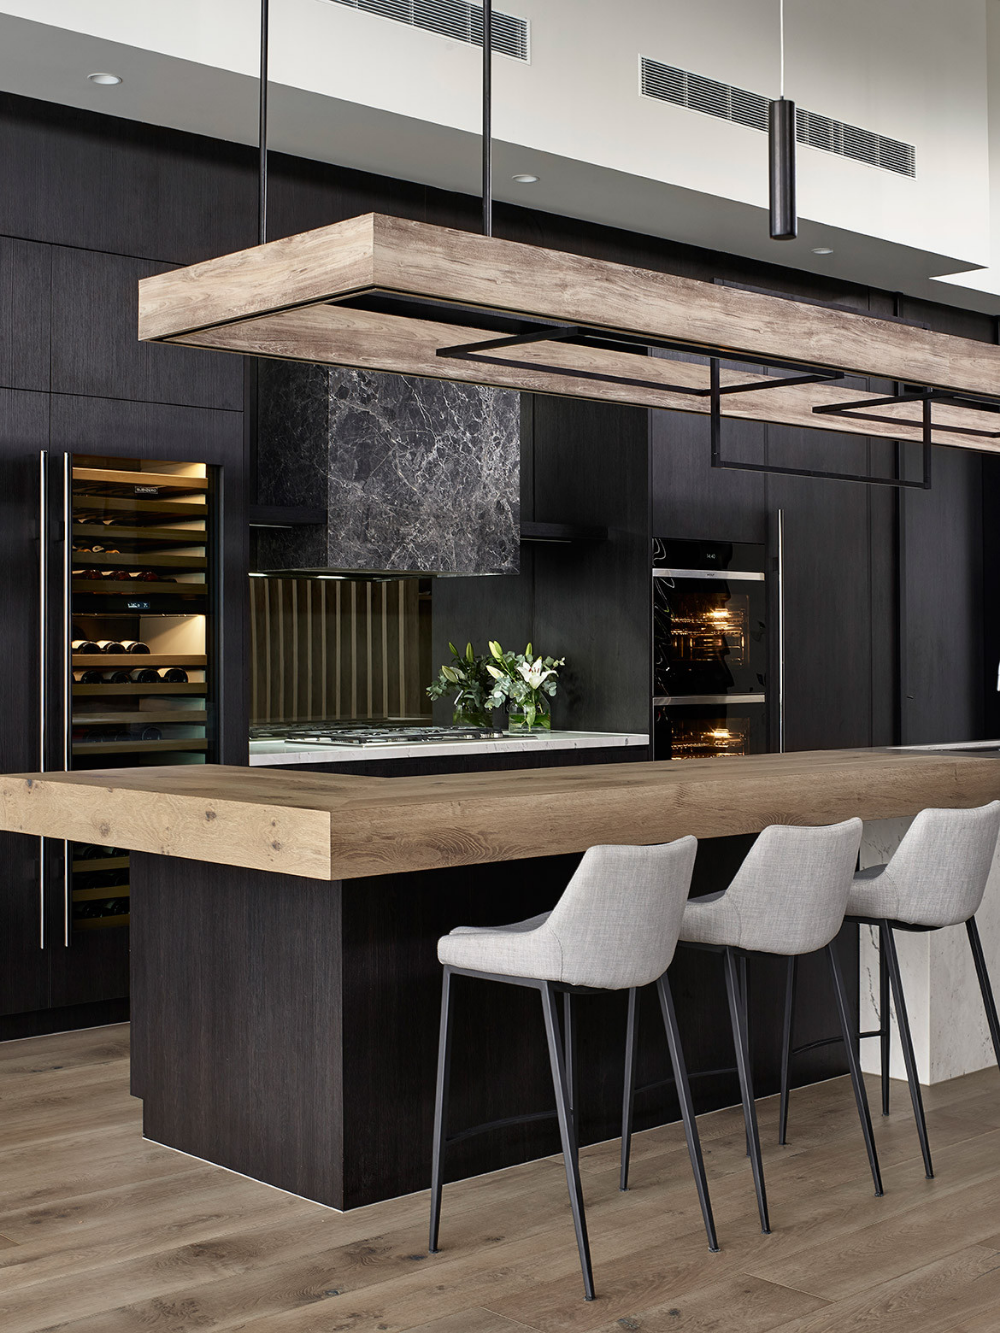 A Moody, Modern Kitchen Design By Maker + May | Modern ...